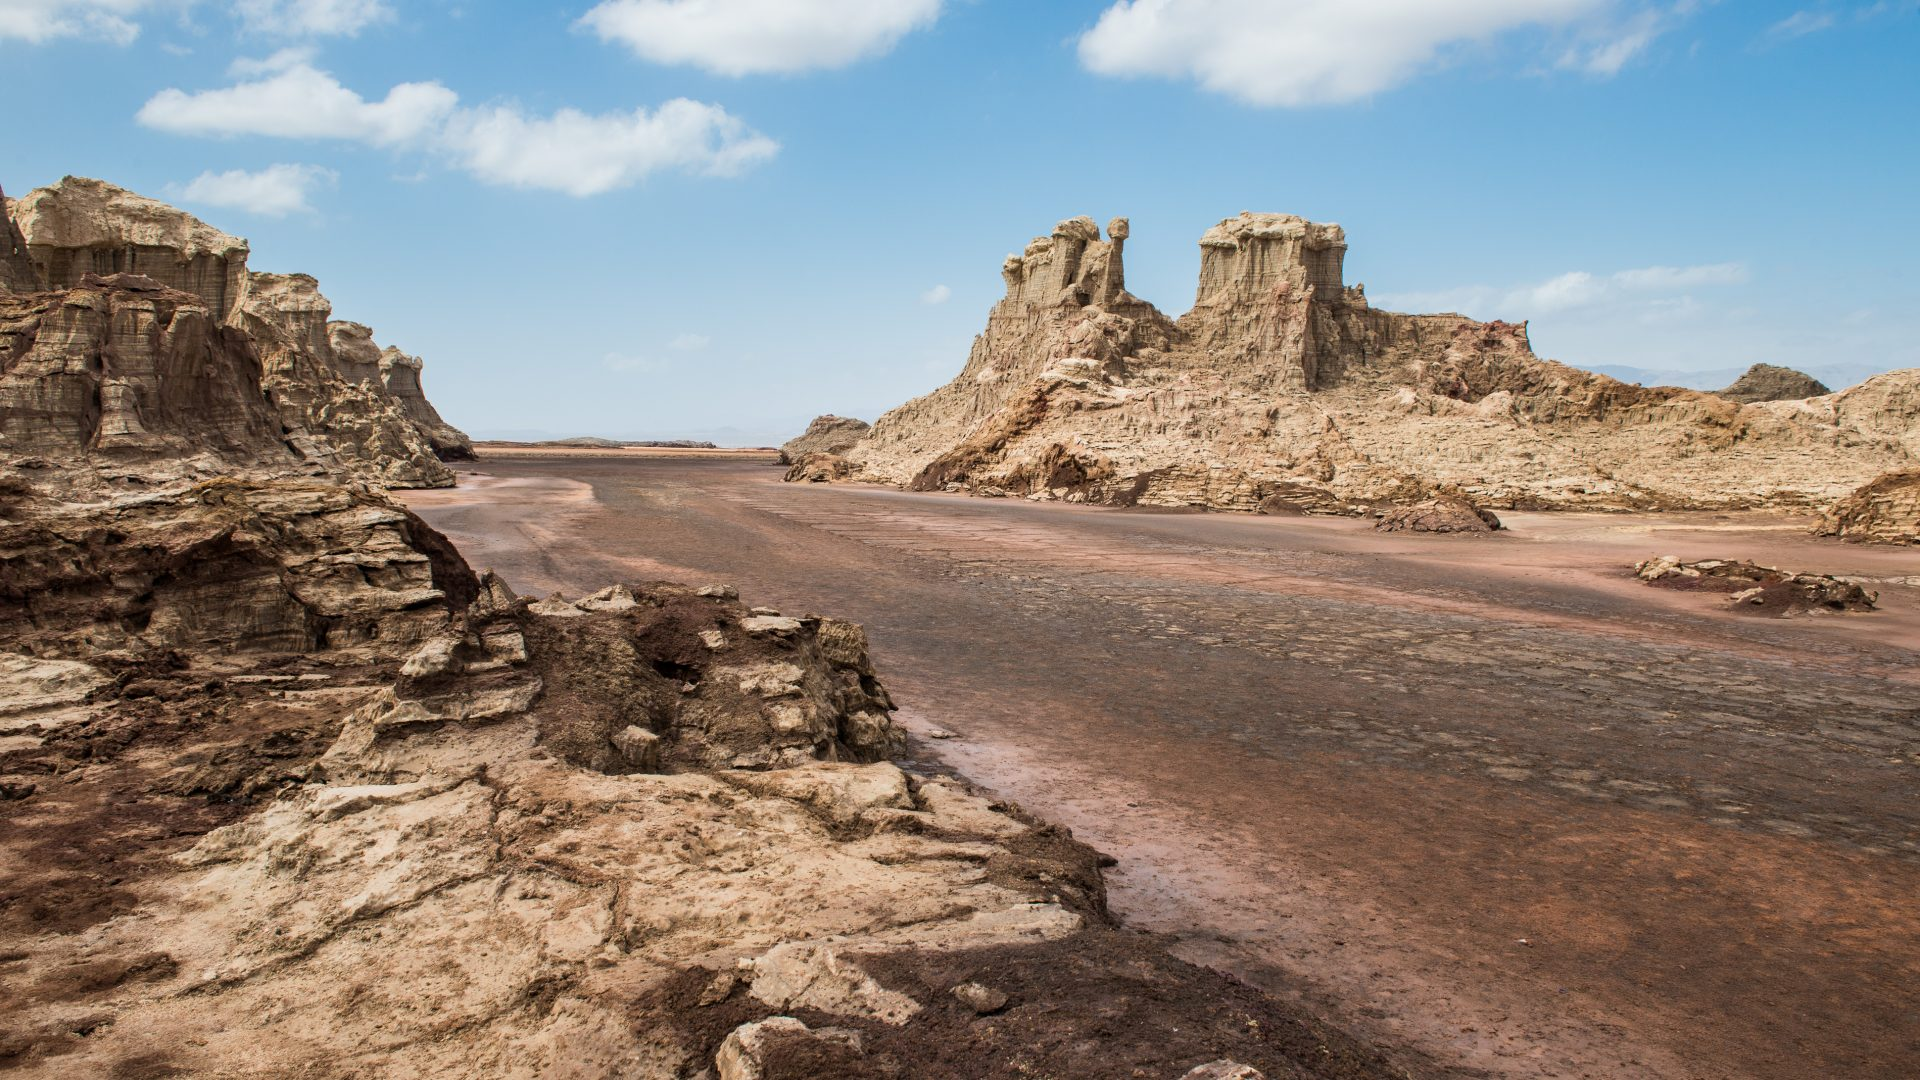 Rock formations stand out against the blue sky of the region around the Danakil Depression, Ethiopia.